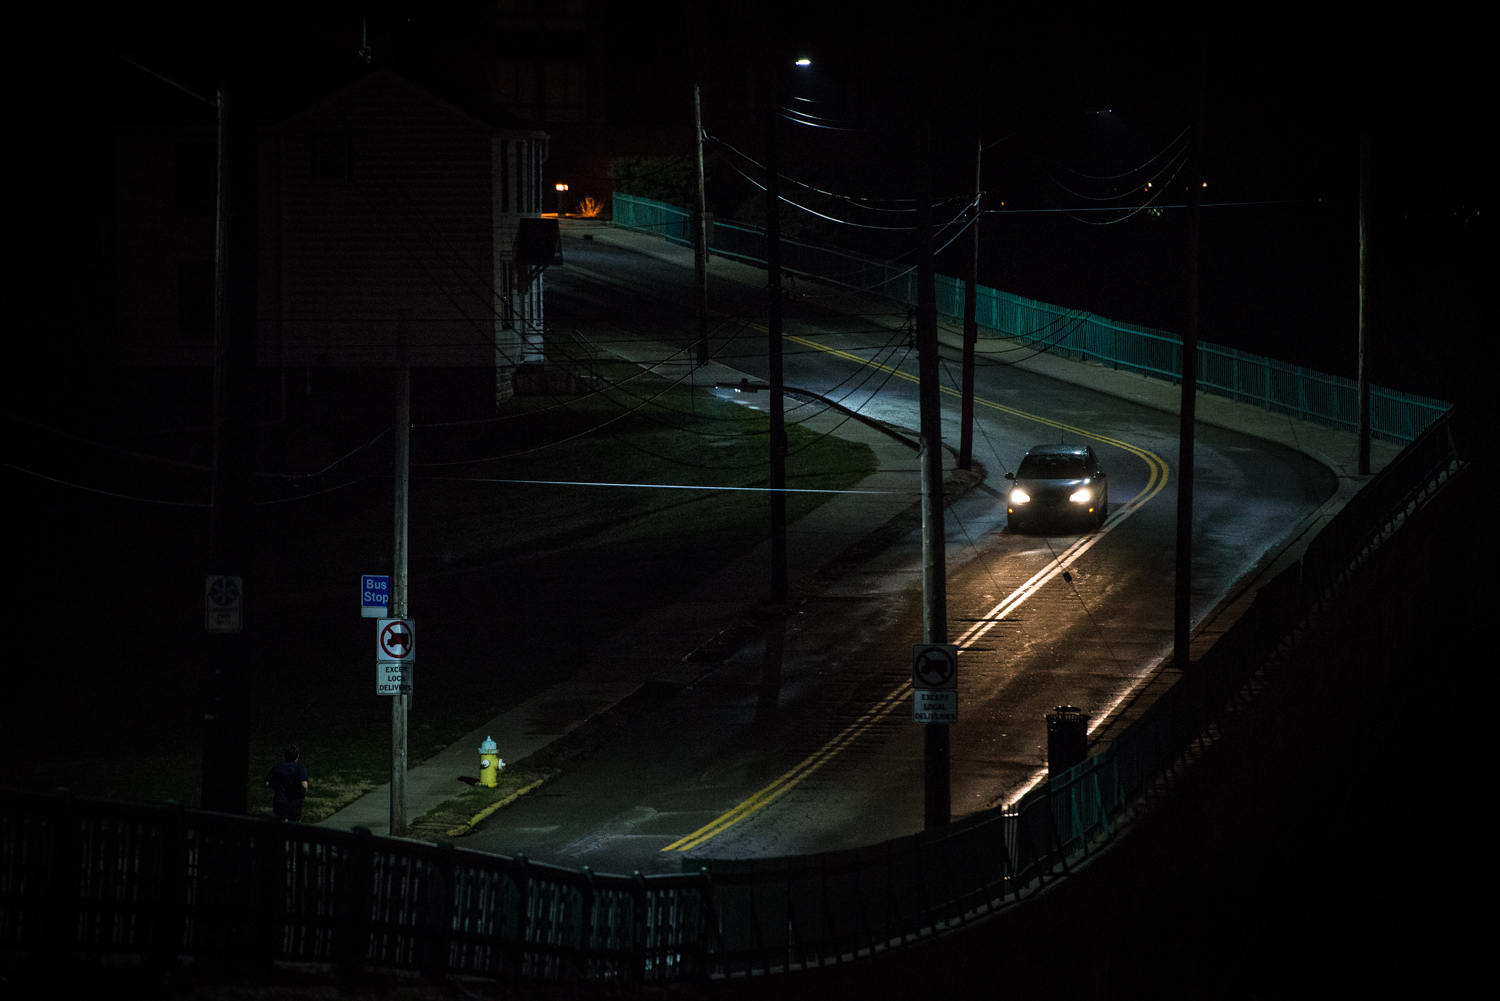 One of the features I love about my Nikon D600 is its ability to see in the dark without compromising clarity. This image was captured with a high ISO of 4000, which allowed for a shutter speed of 1/160th at F 3.2, yes there is very little grain present.